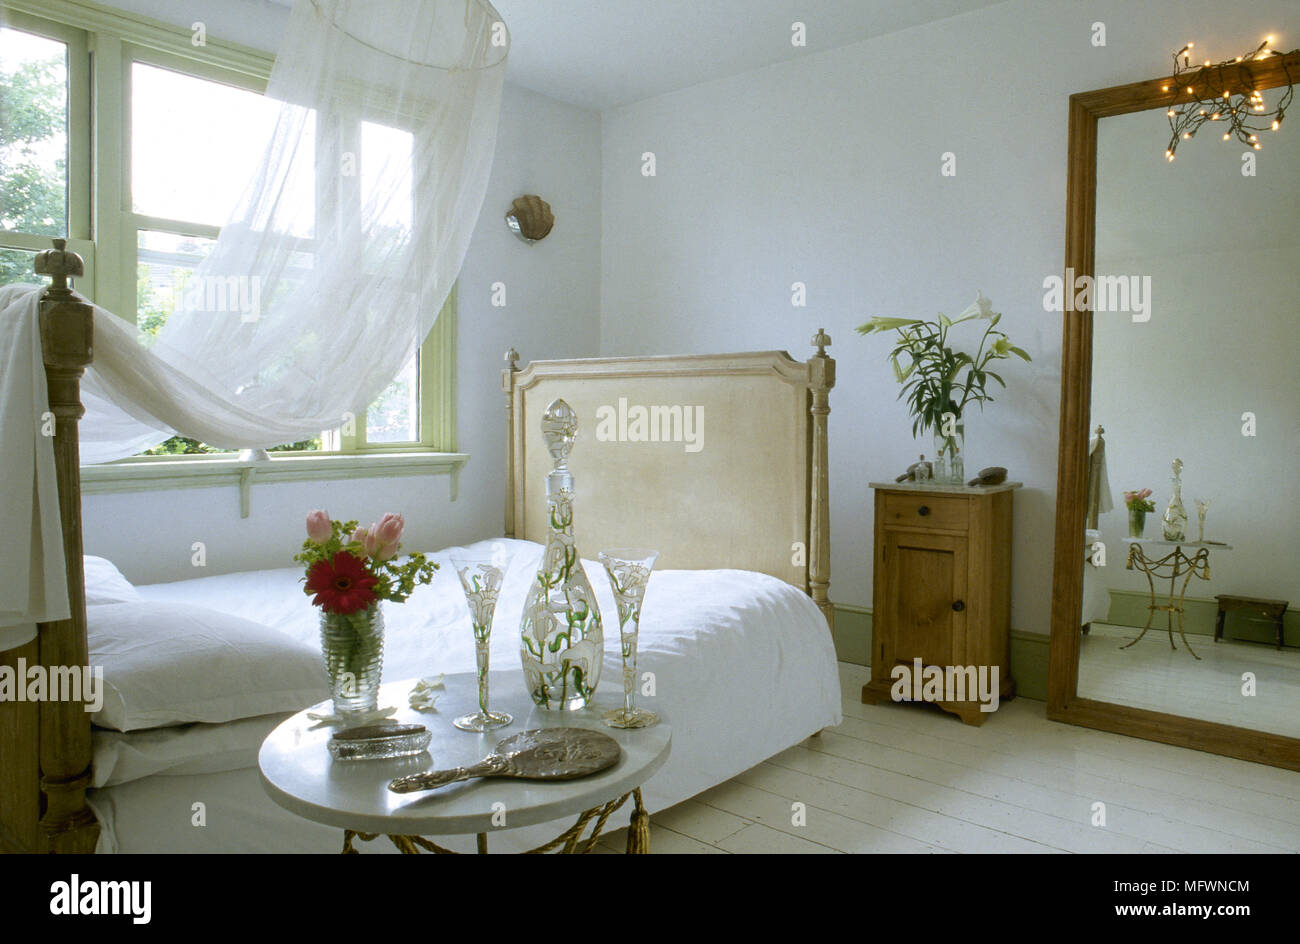 Romantic Bedroom With Sheer Canopy Over A Double Bed, Large Mirror, Bedside  Table, And A Sunny Window.